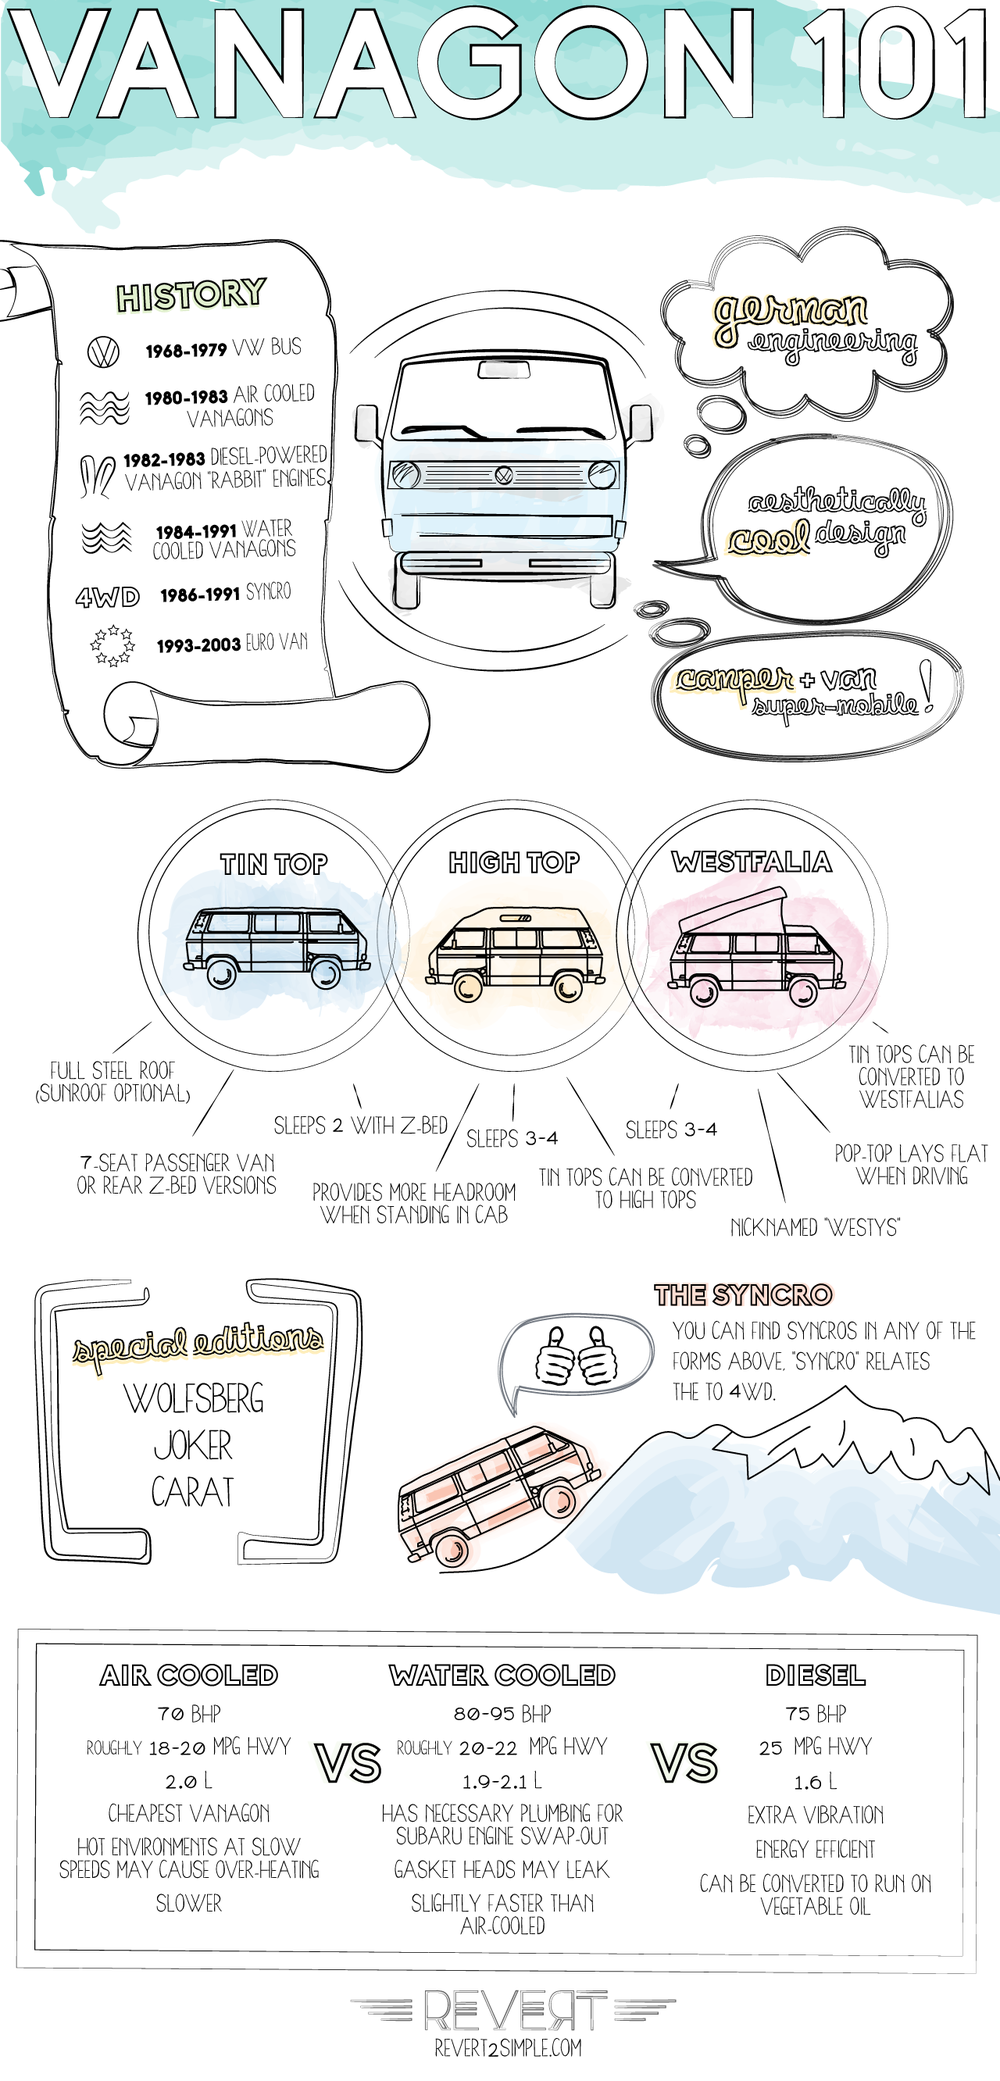 hight resolution of vanagon 101 infographic westfalia westy high top tin top syncro